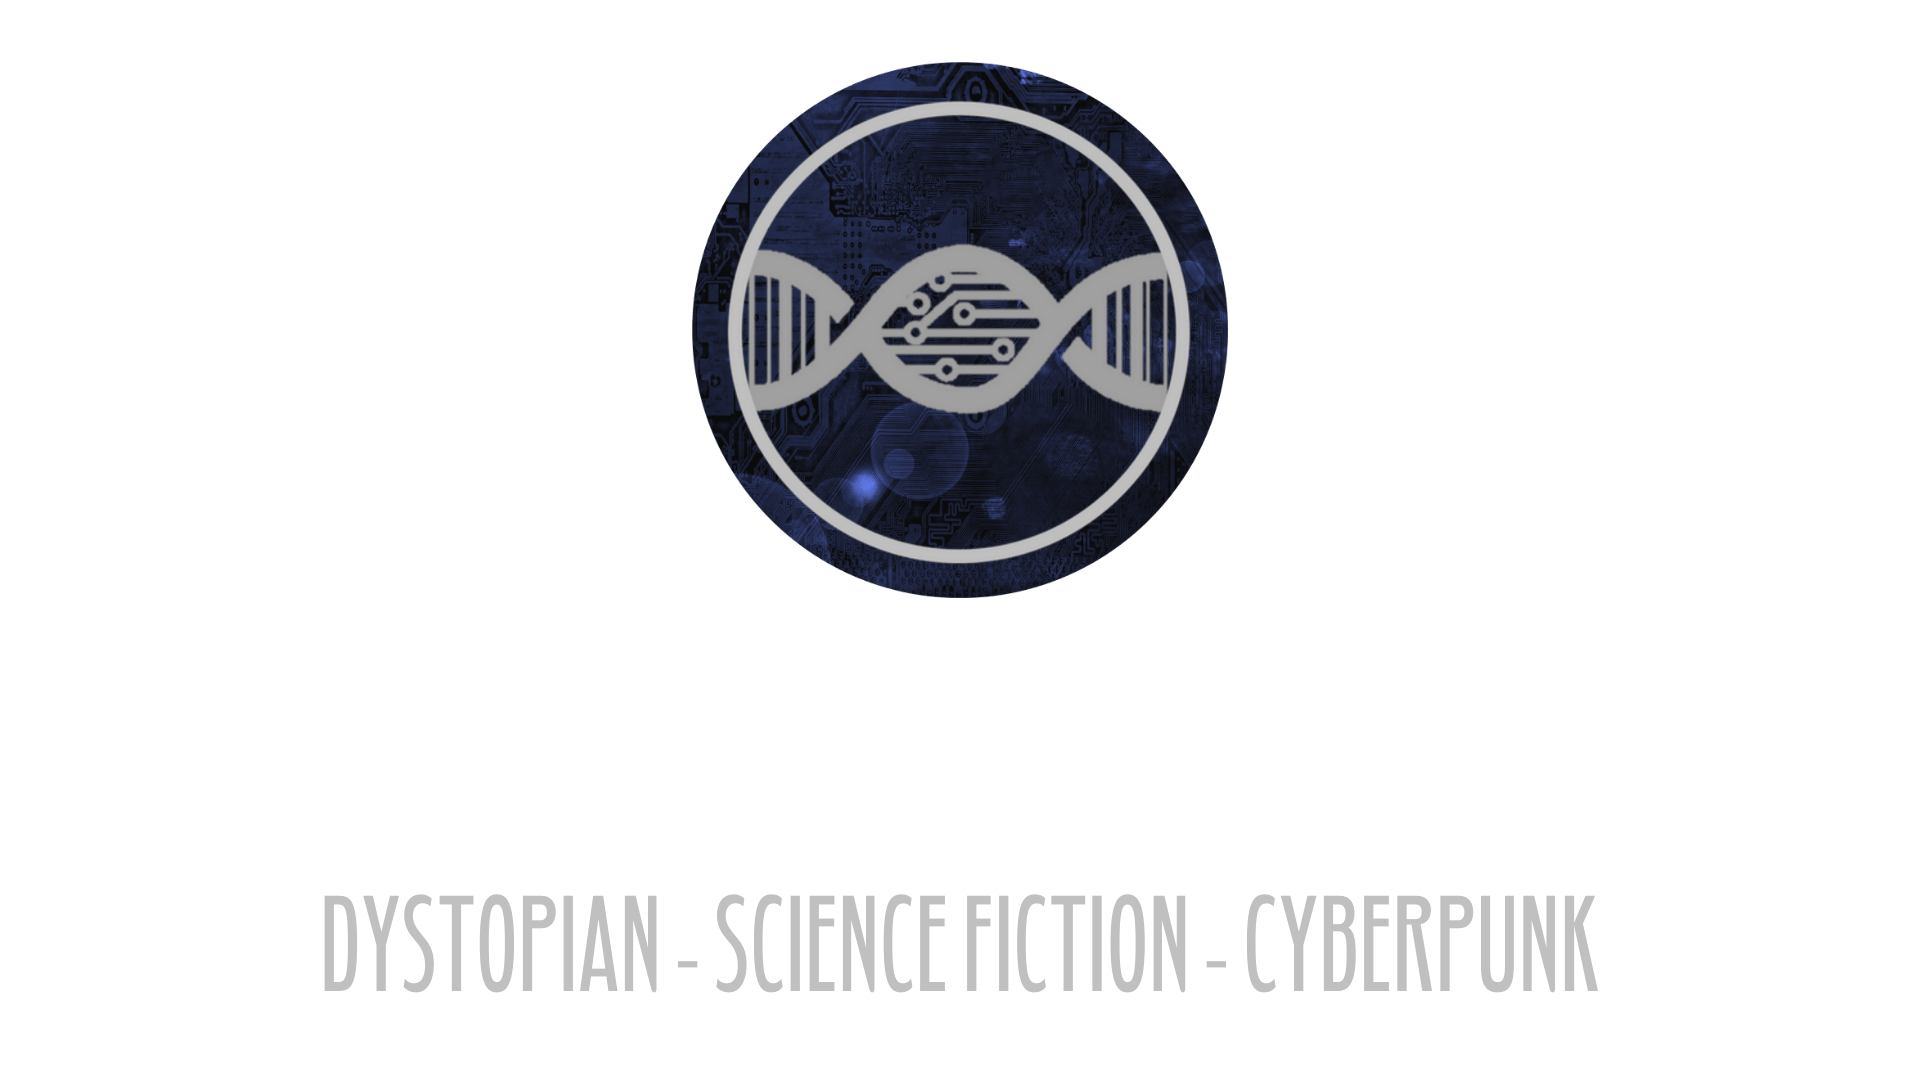 J. I. Rogers – Author